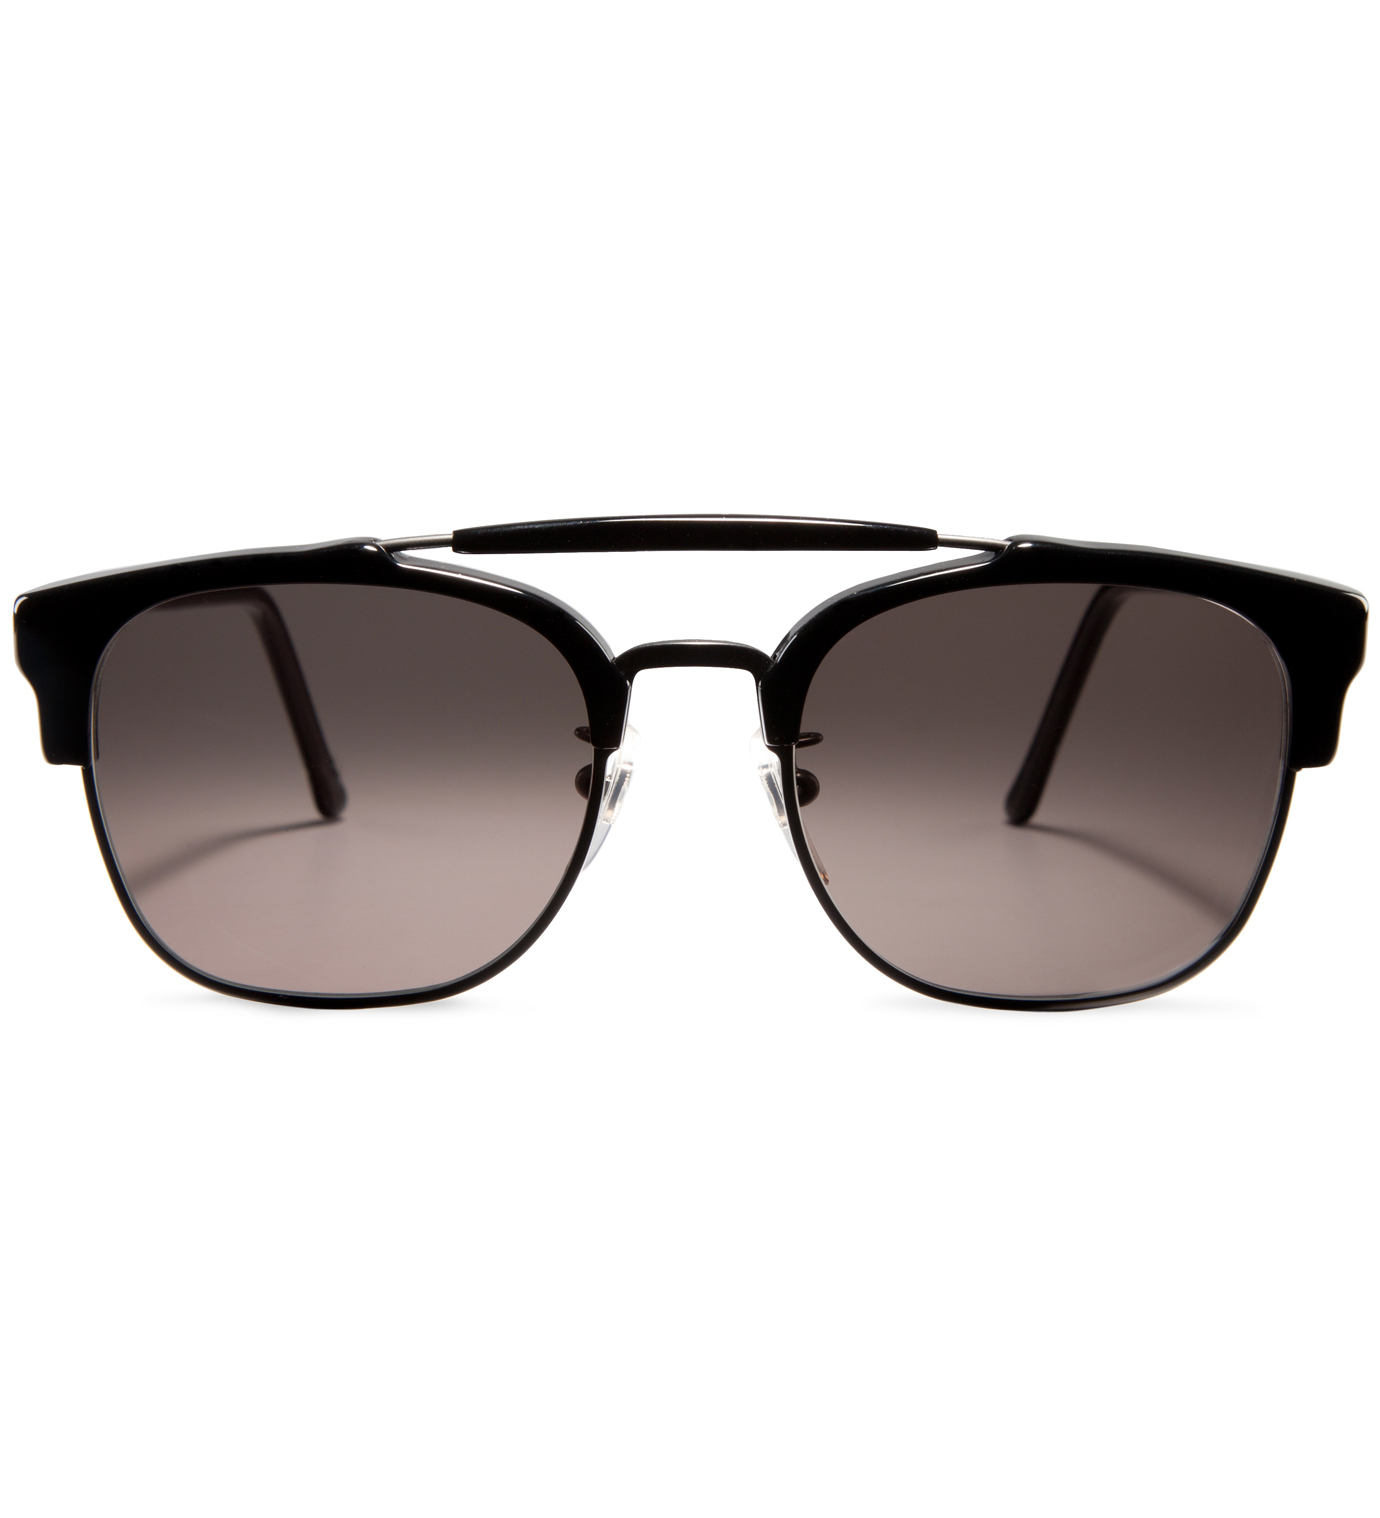 SUPER BY RETROSUPERFUTURE 49er Black Sunglasses